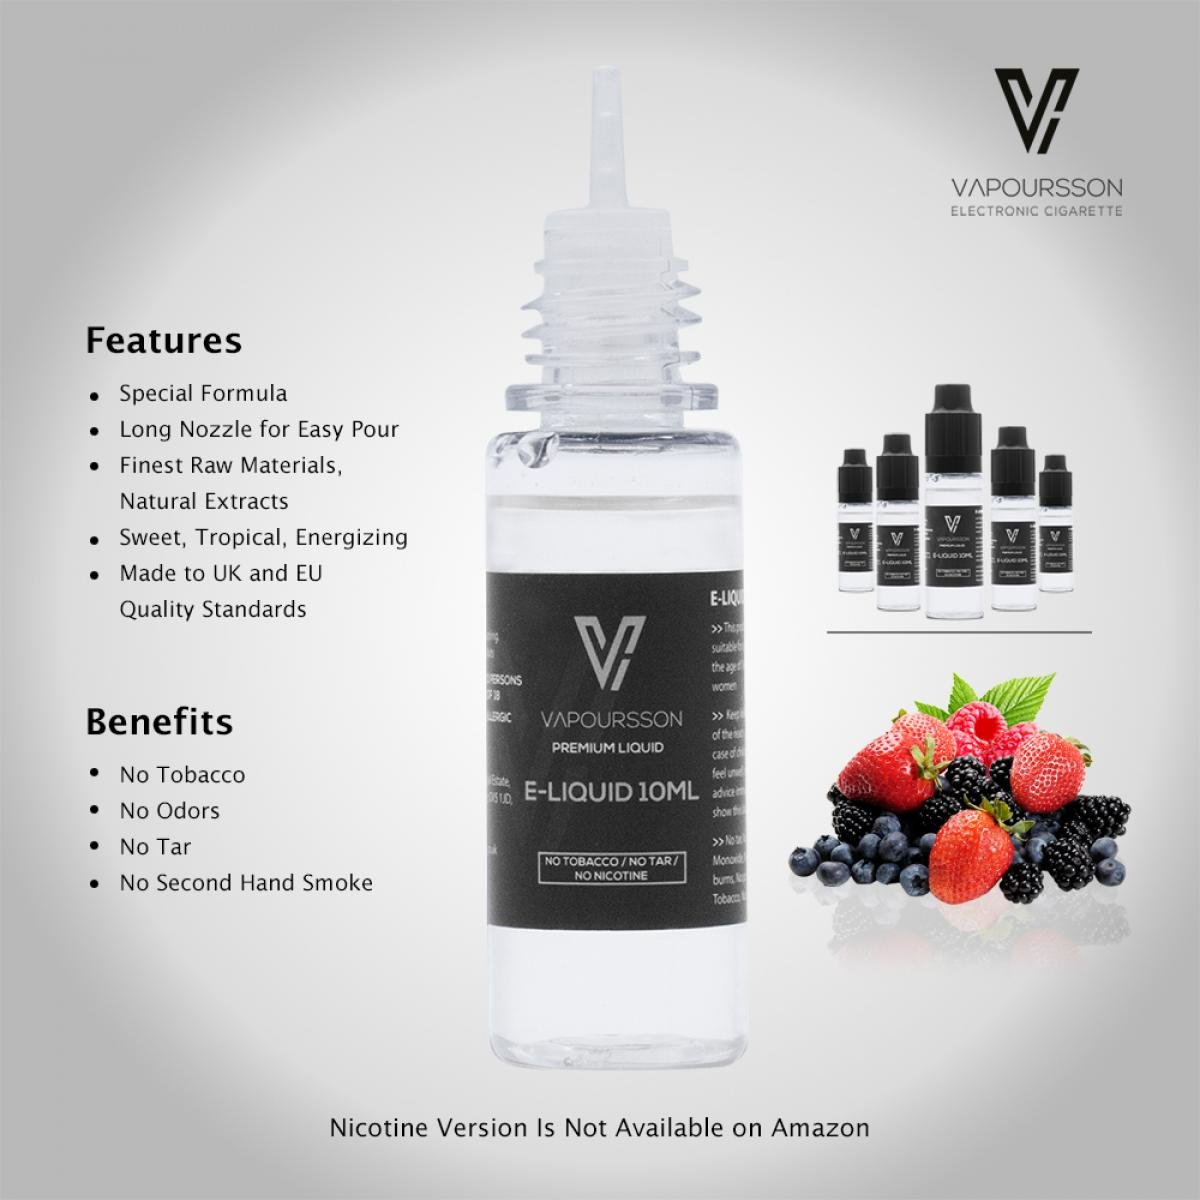 VAPOURSSON 5 x 10 ml Liquid E Berry pack | Berry Mix | Blueberry | Blackberry | Frambuesa | Fresa | Ingredientes de alto grado | VG & PG Mix | Hecho ...